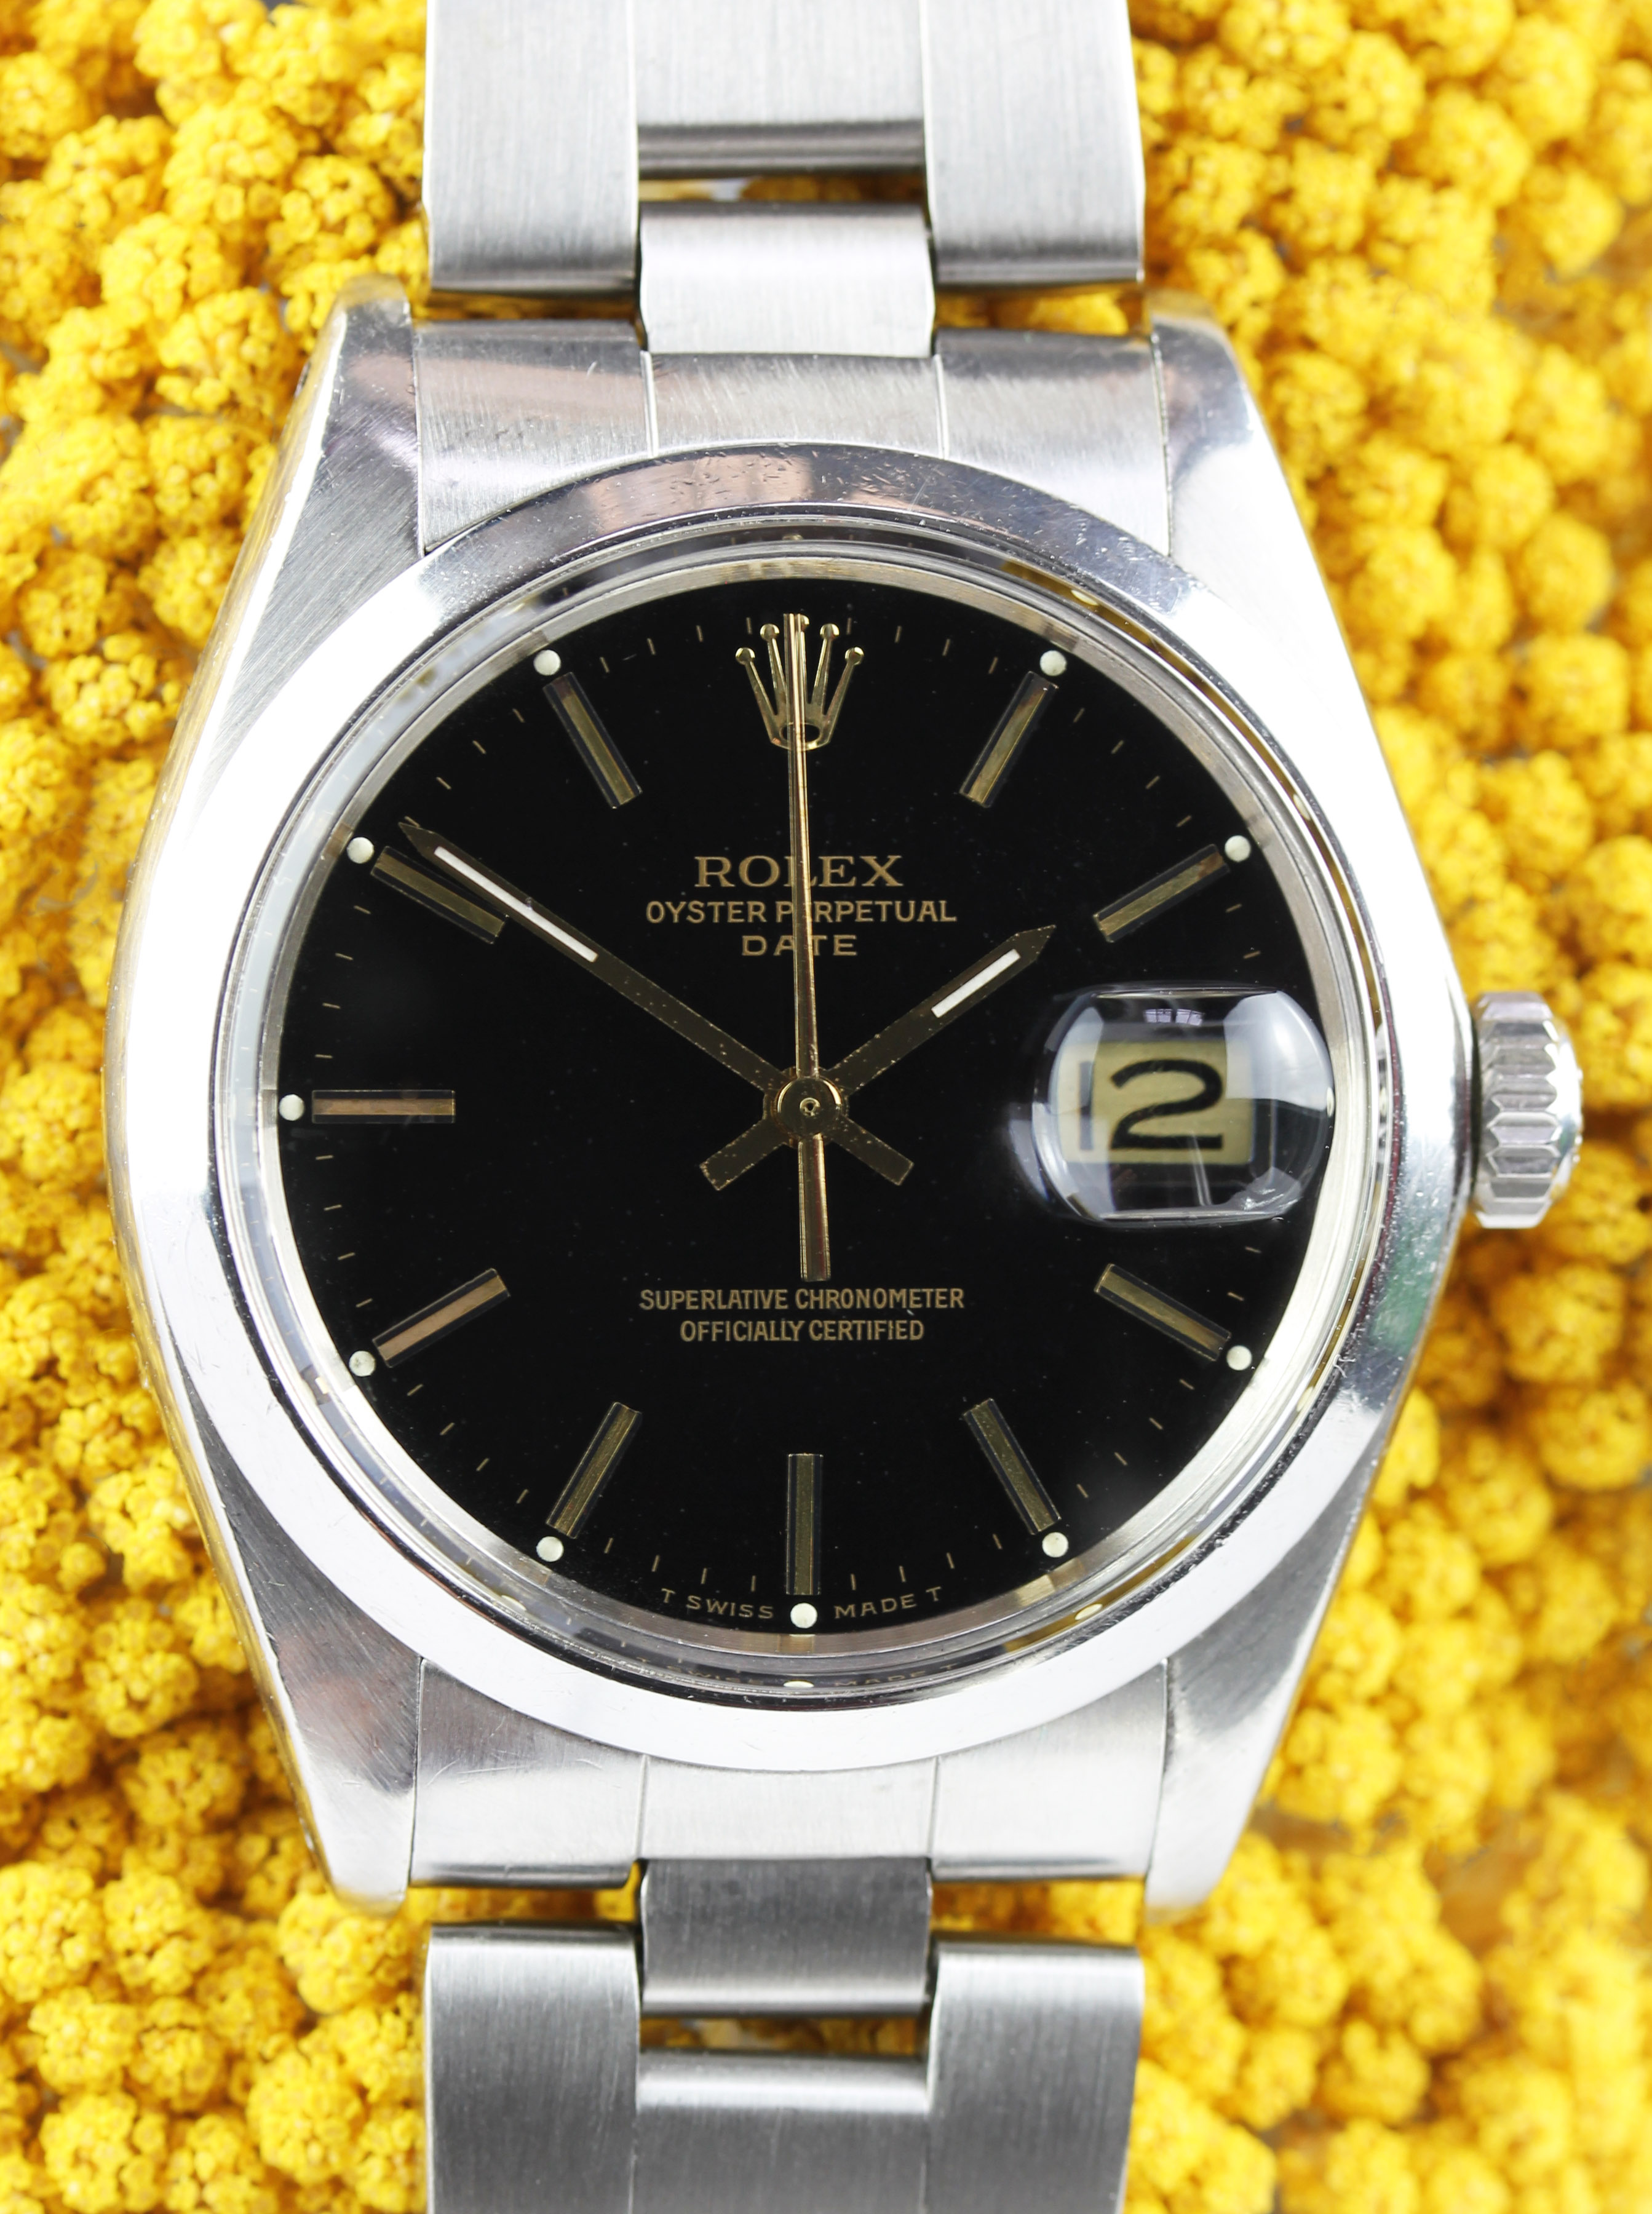 Extremely rare ROLEX Date from 1976 with an original black dial